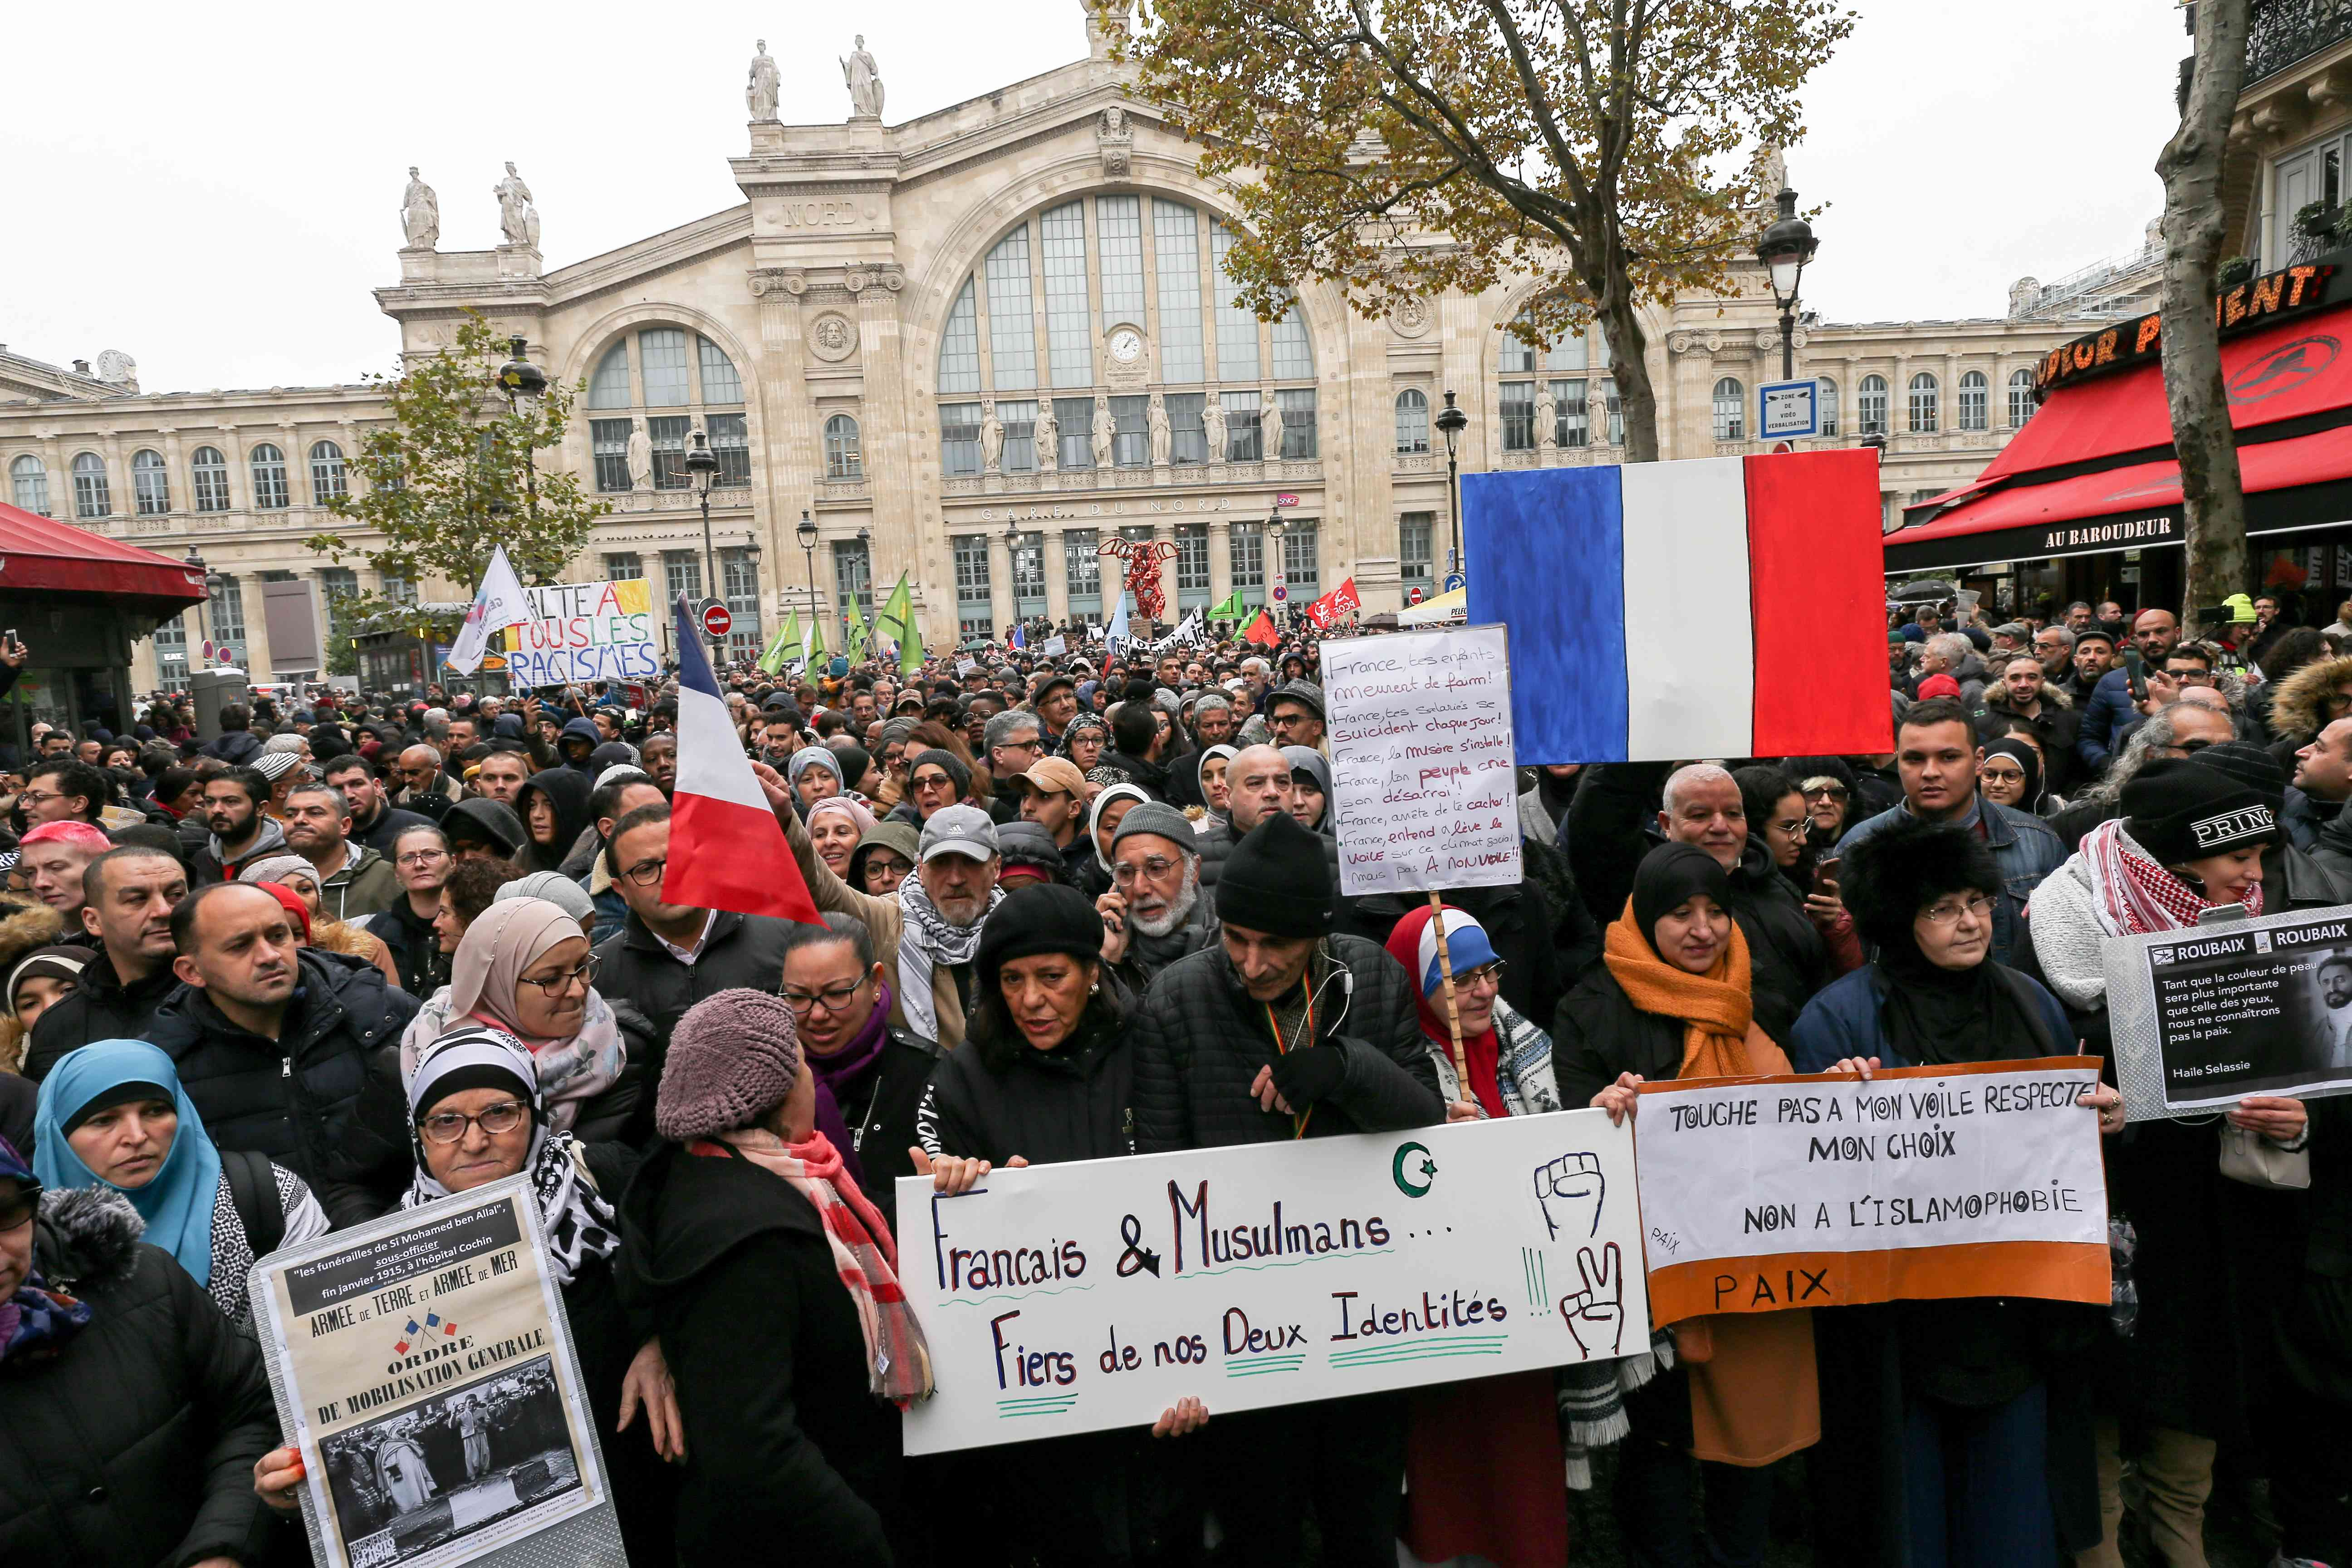 People wave French national flags, chant slogans and hold placards as they take part in a demonstration march in front of the Gare du Nord, in Paris, on November 10, 2019, to protest against Islamophobia, at the call of several anti-racist activists and co